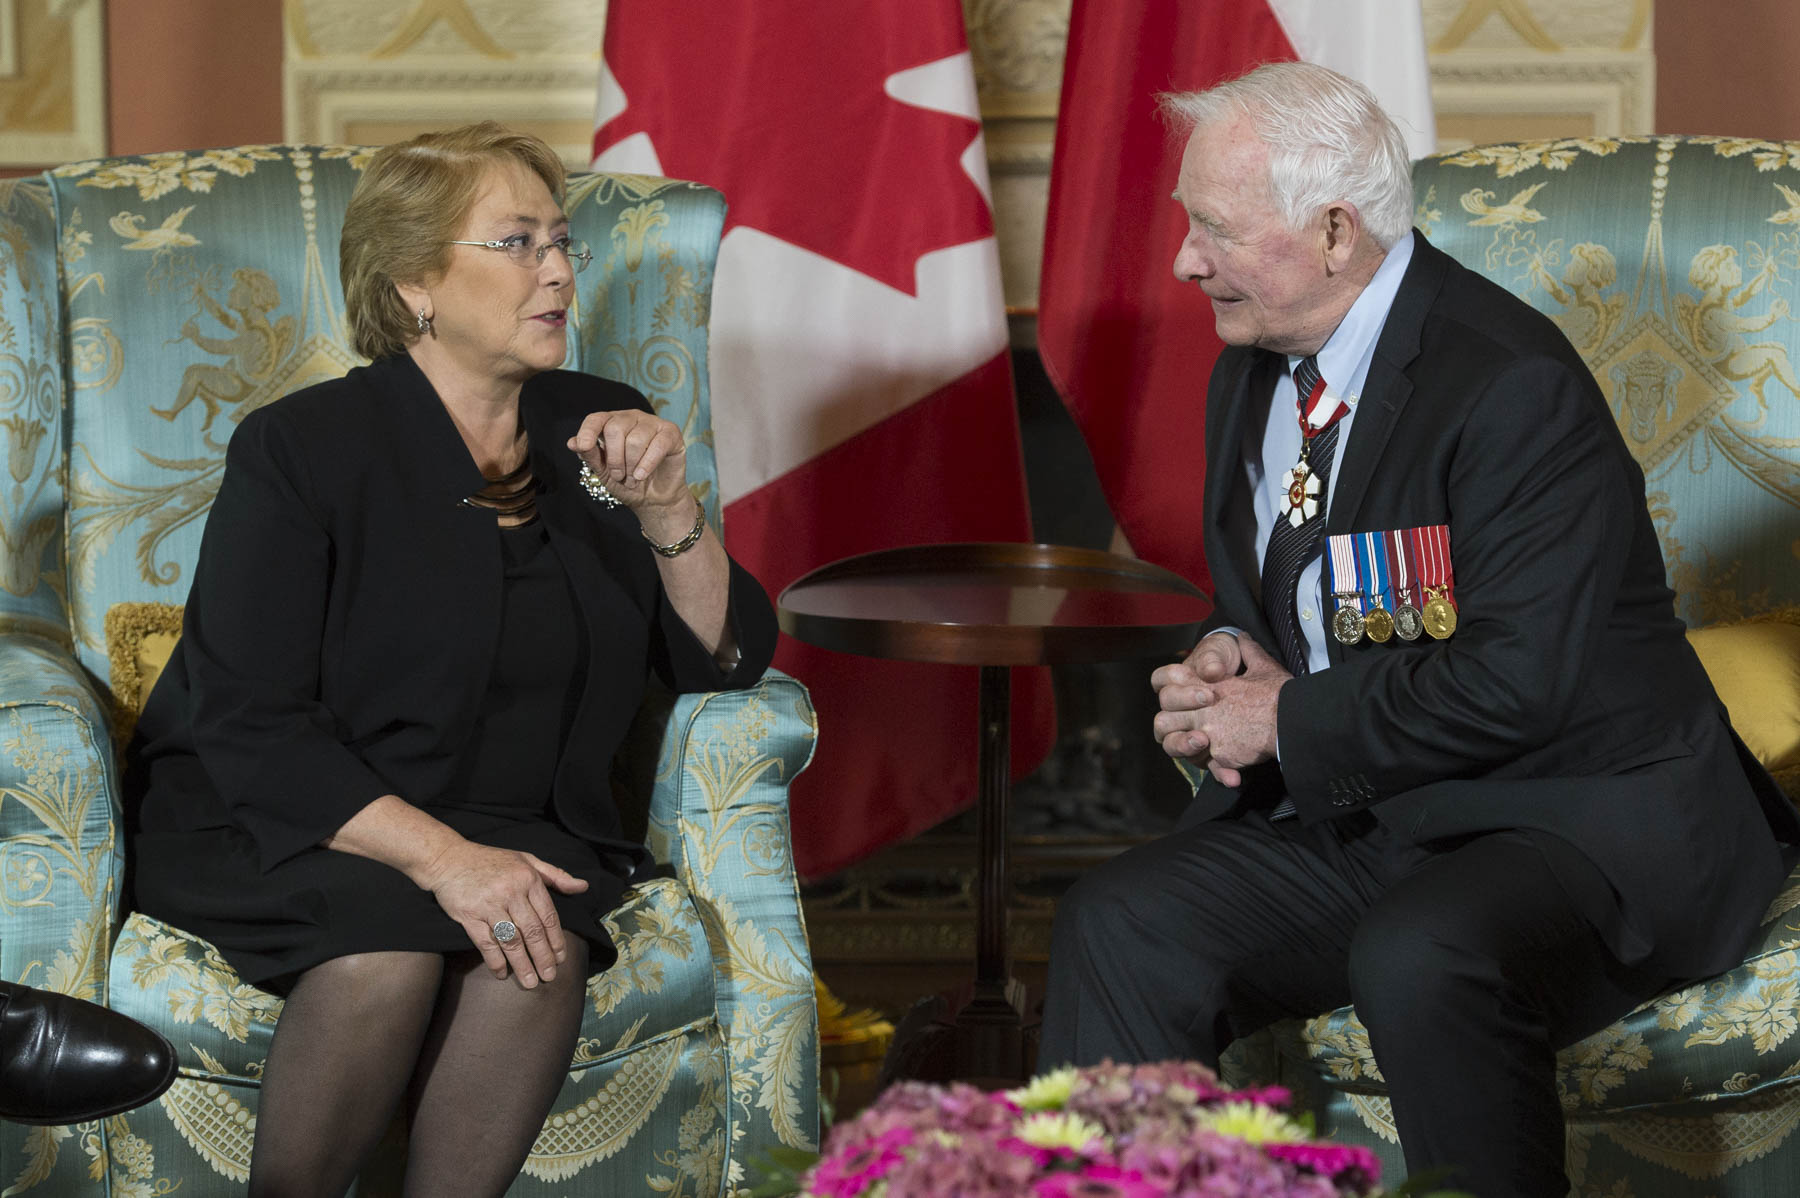 This meeting between the Governor General and the President allowed for discussions on Canada-Chile relationships.